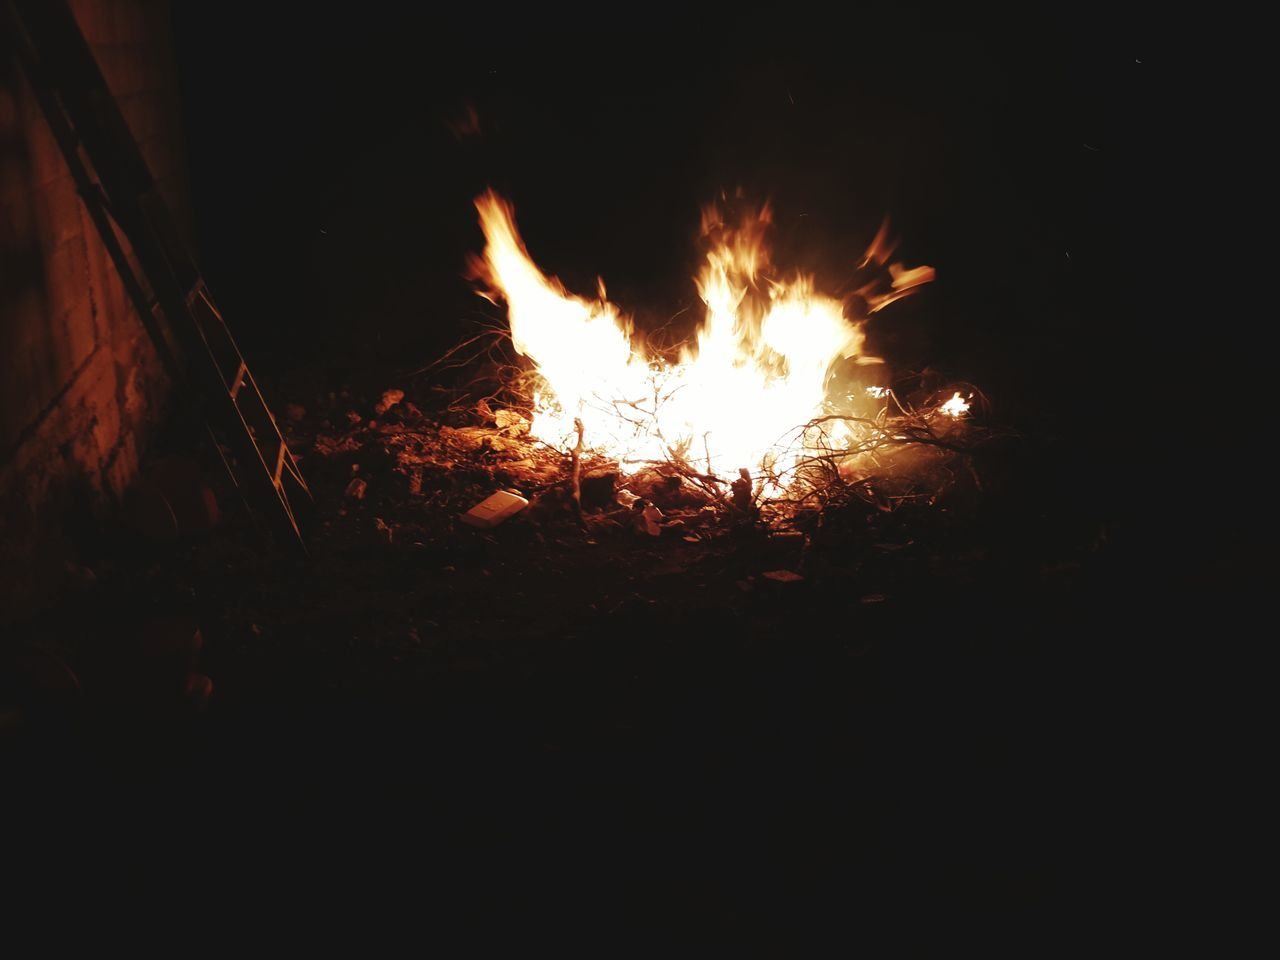 burning, night, flame, heat - temperature, no people, bonfire, outdoors, close-up, nature